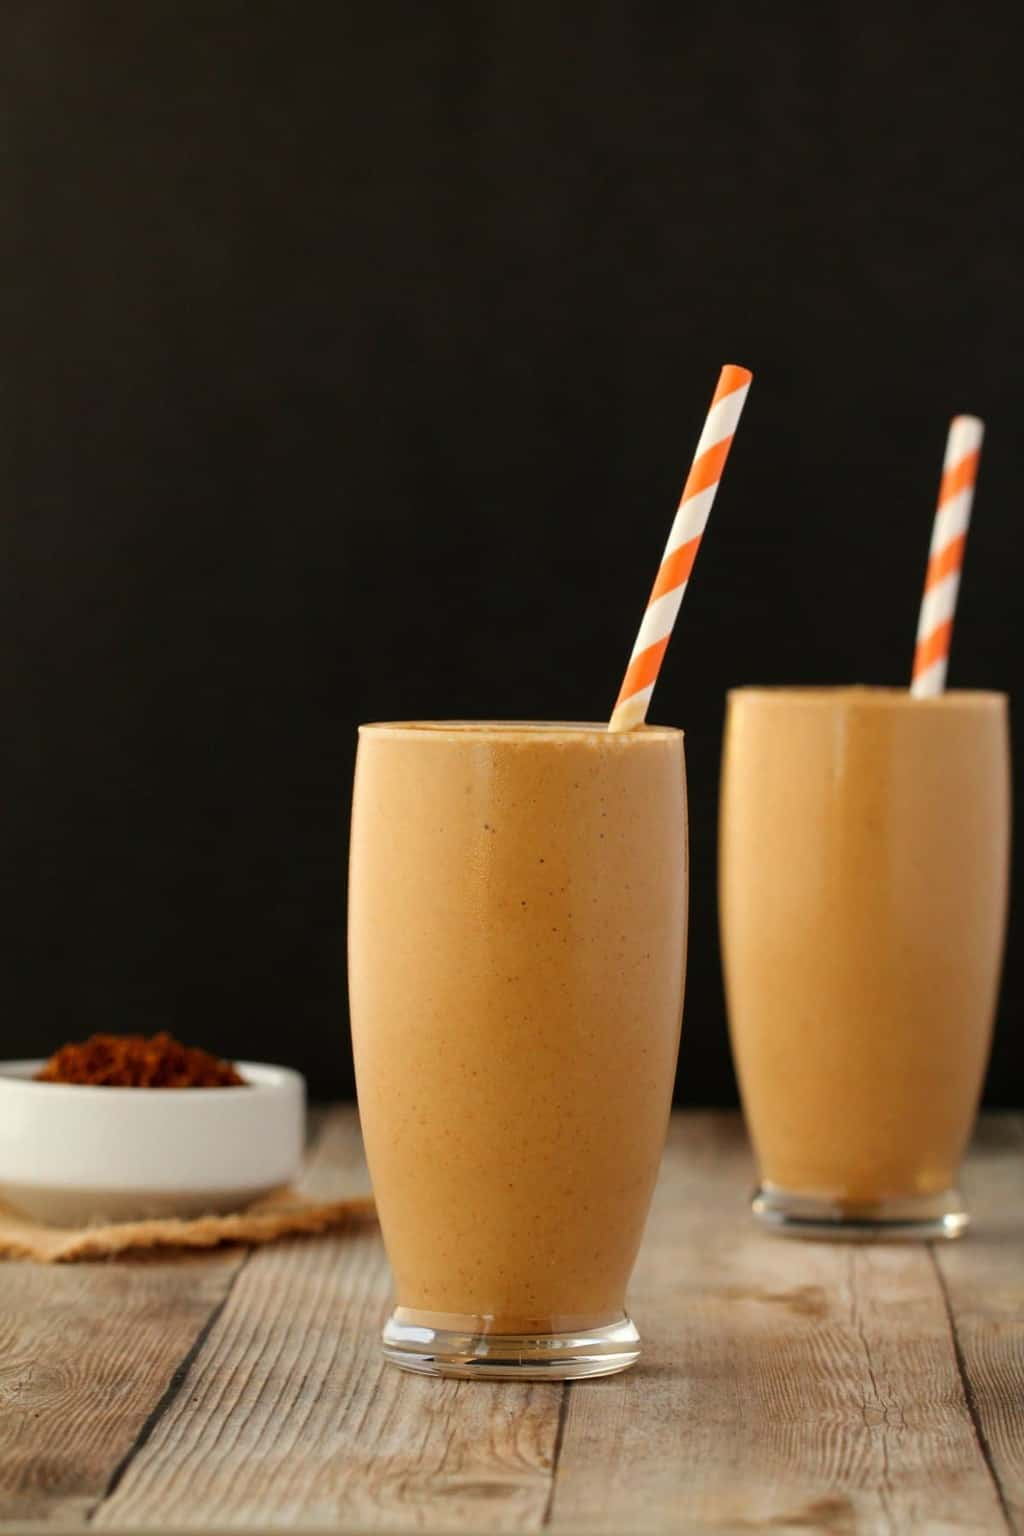 Vegan coffee smoothies in glasses with orange and white striped straws.